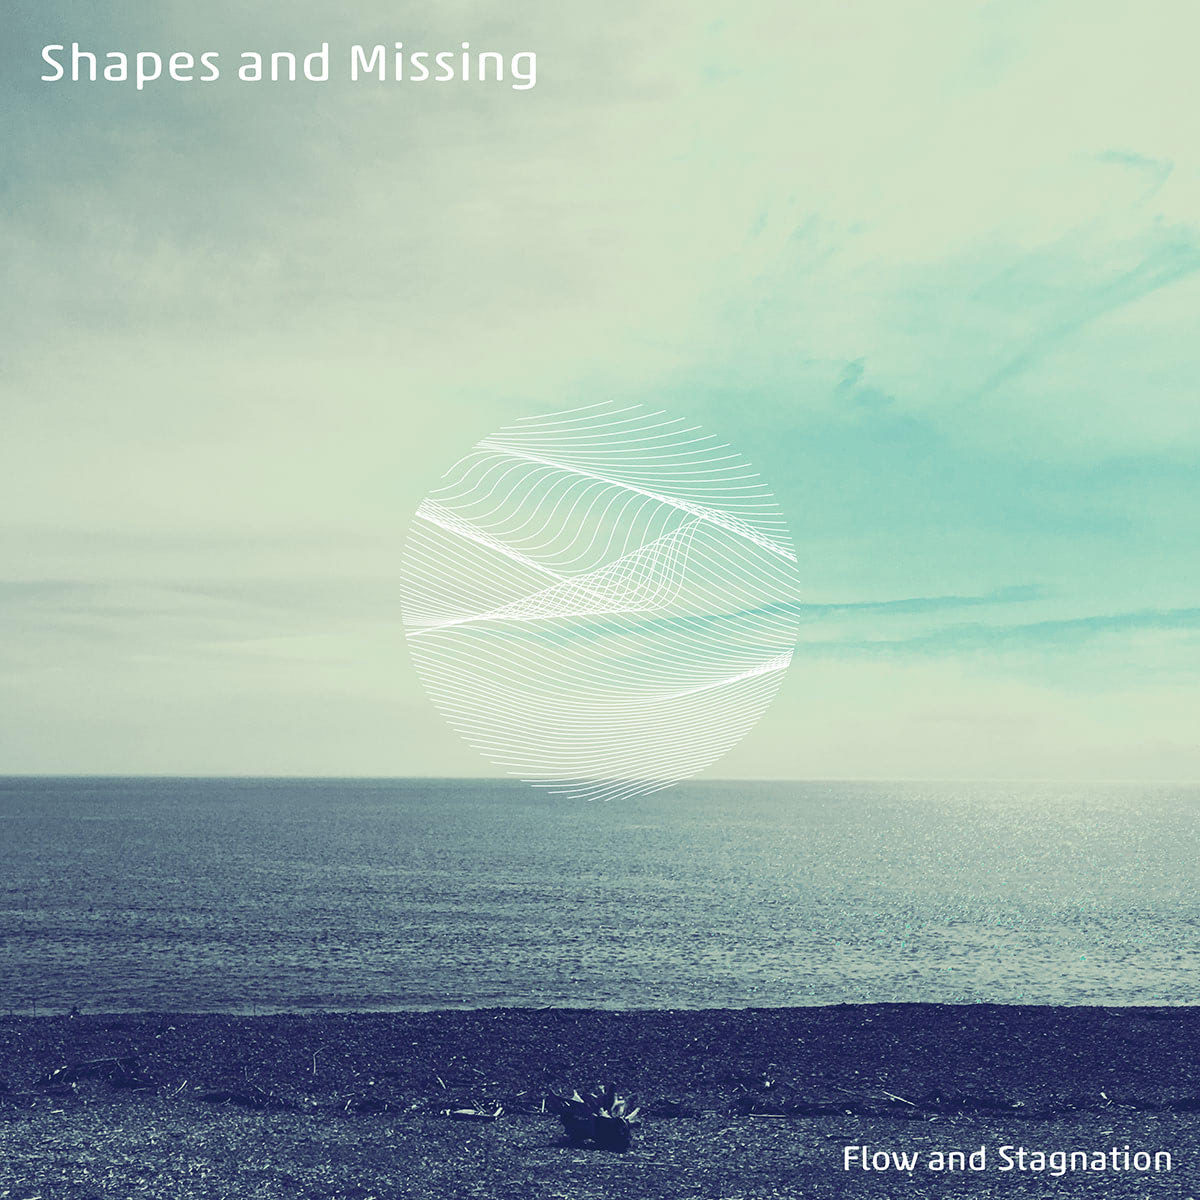 Shapes and Missing